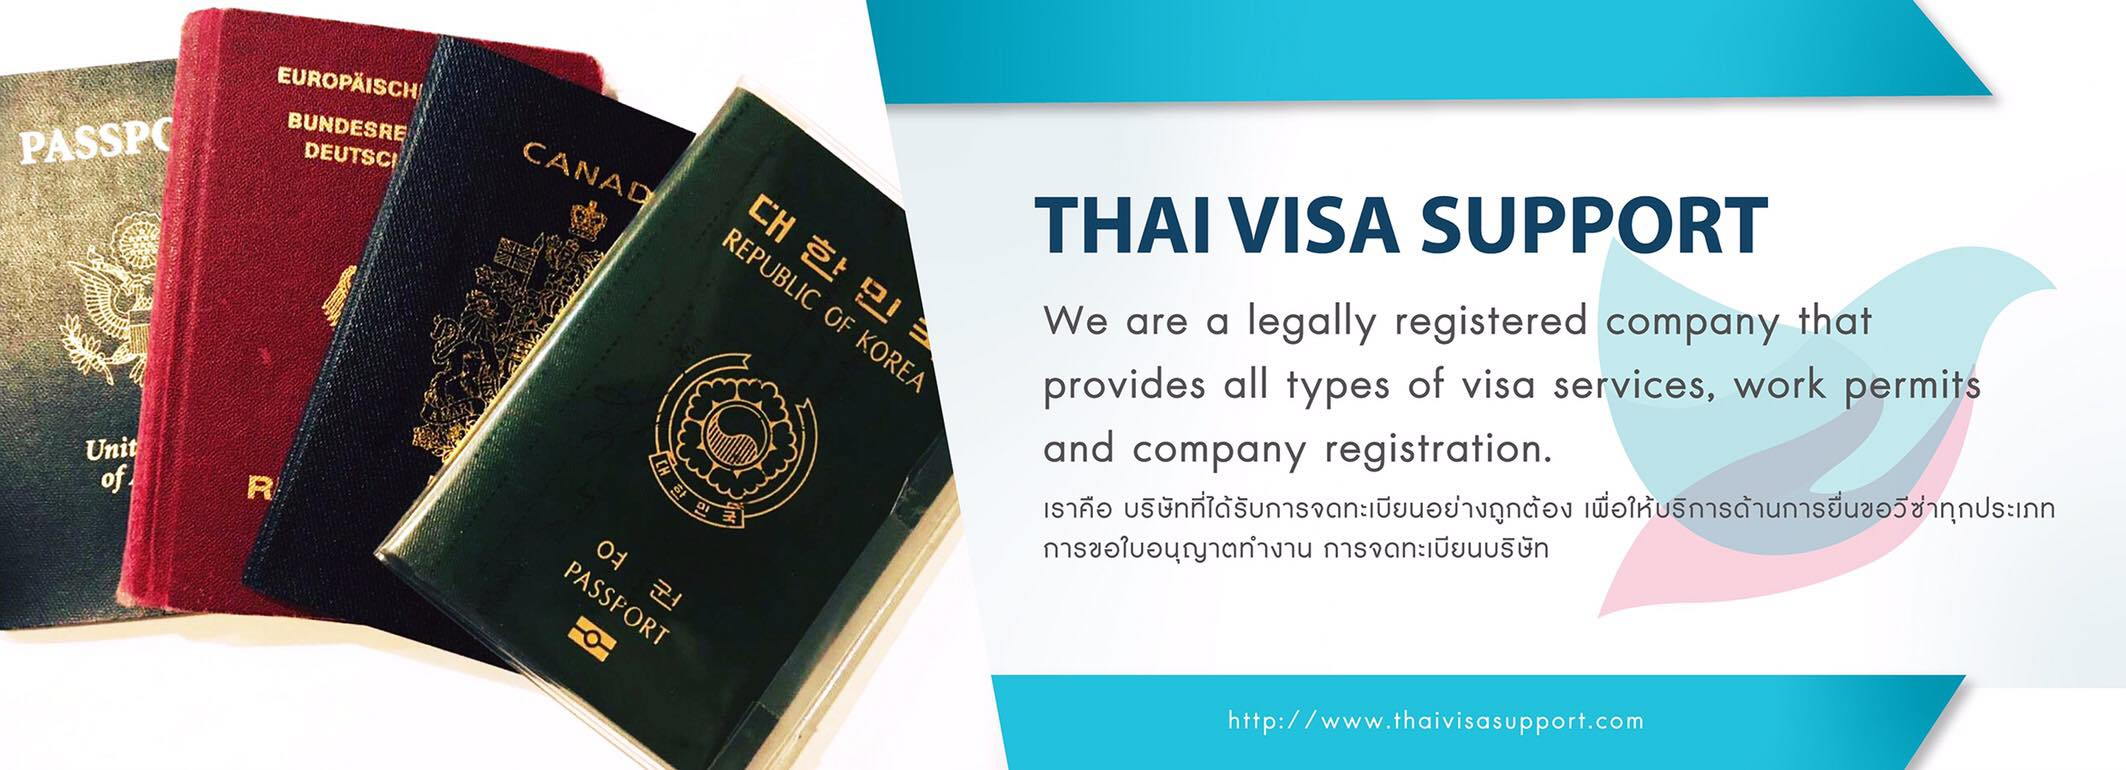 Thai Visa Support